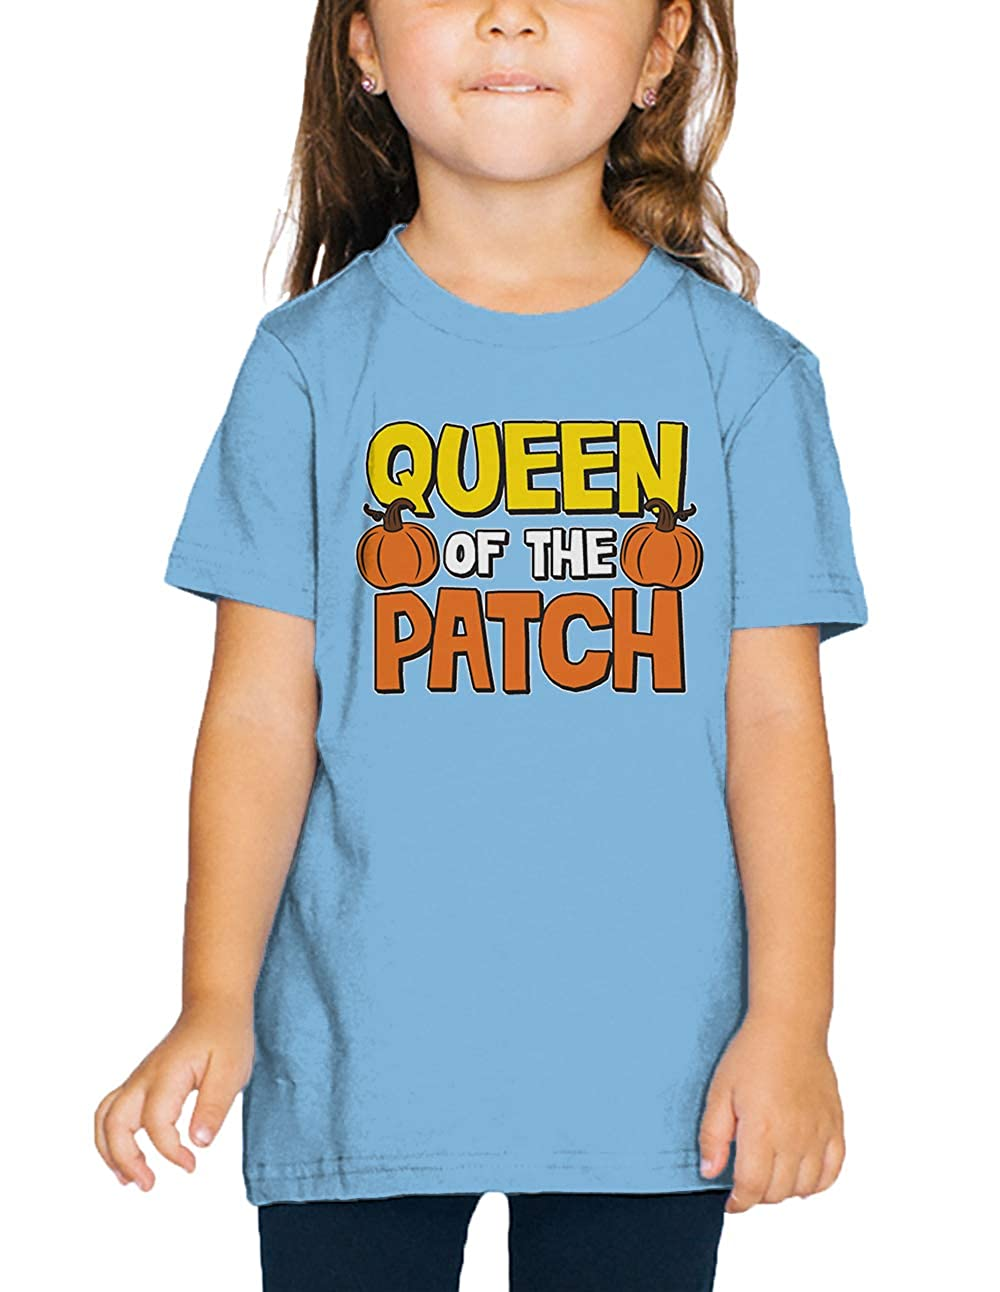 SpiritForged Apparel Queen of The Patch Toddler T-Shirt